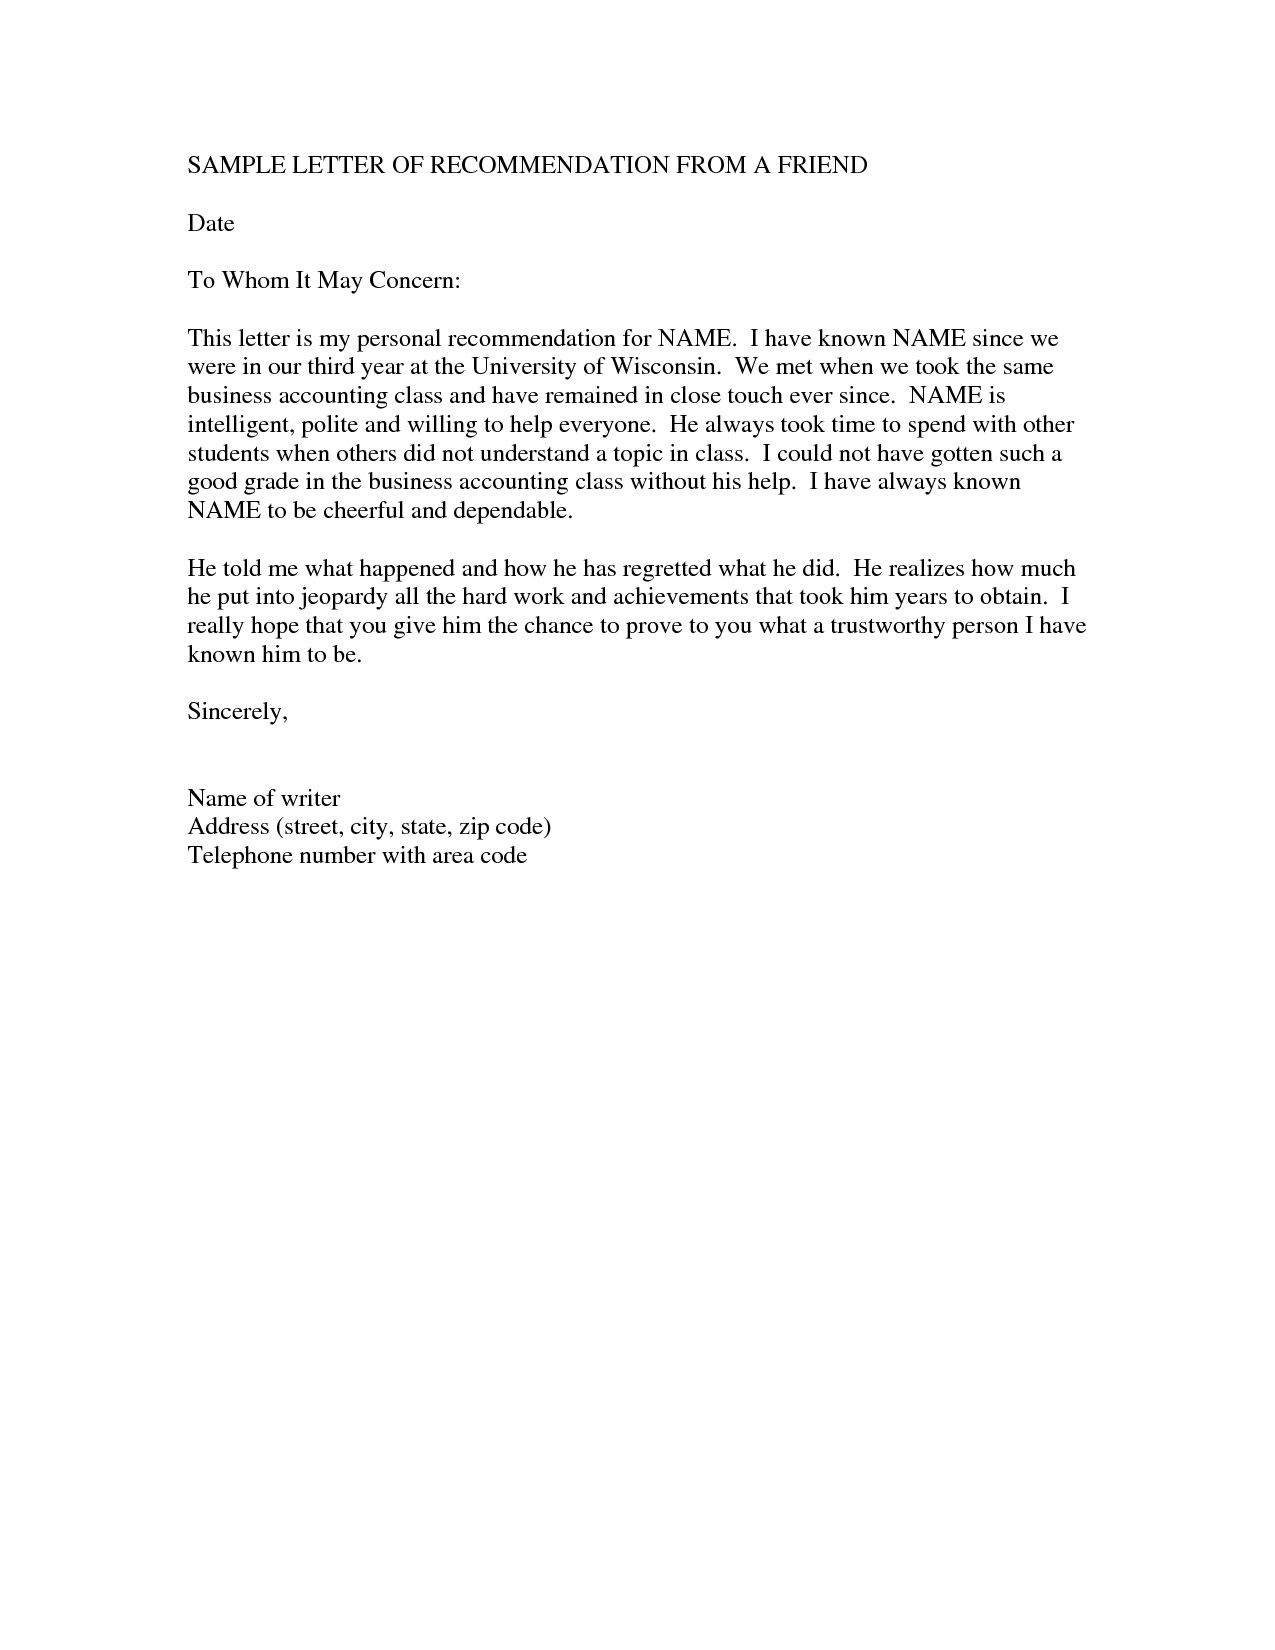 Reference Letter Examples For A Friend Online Business – Sample Reference Letter for Business